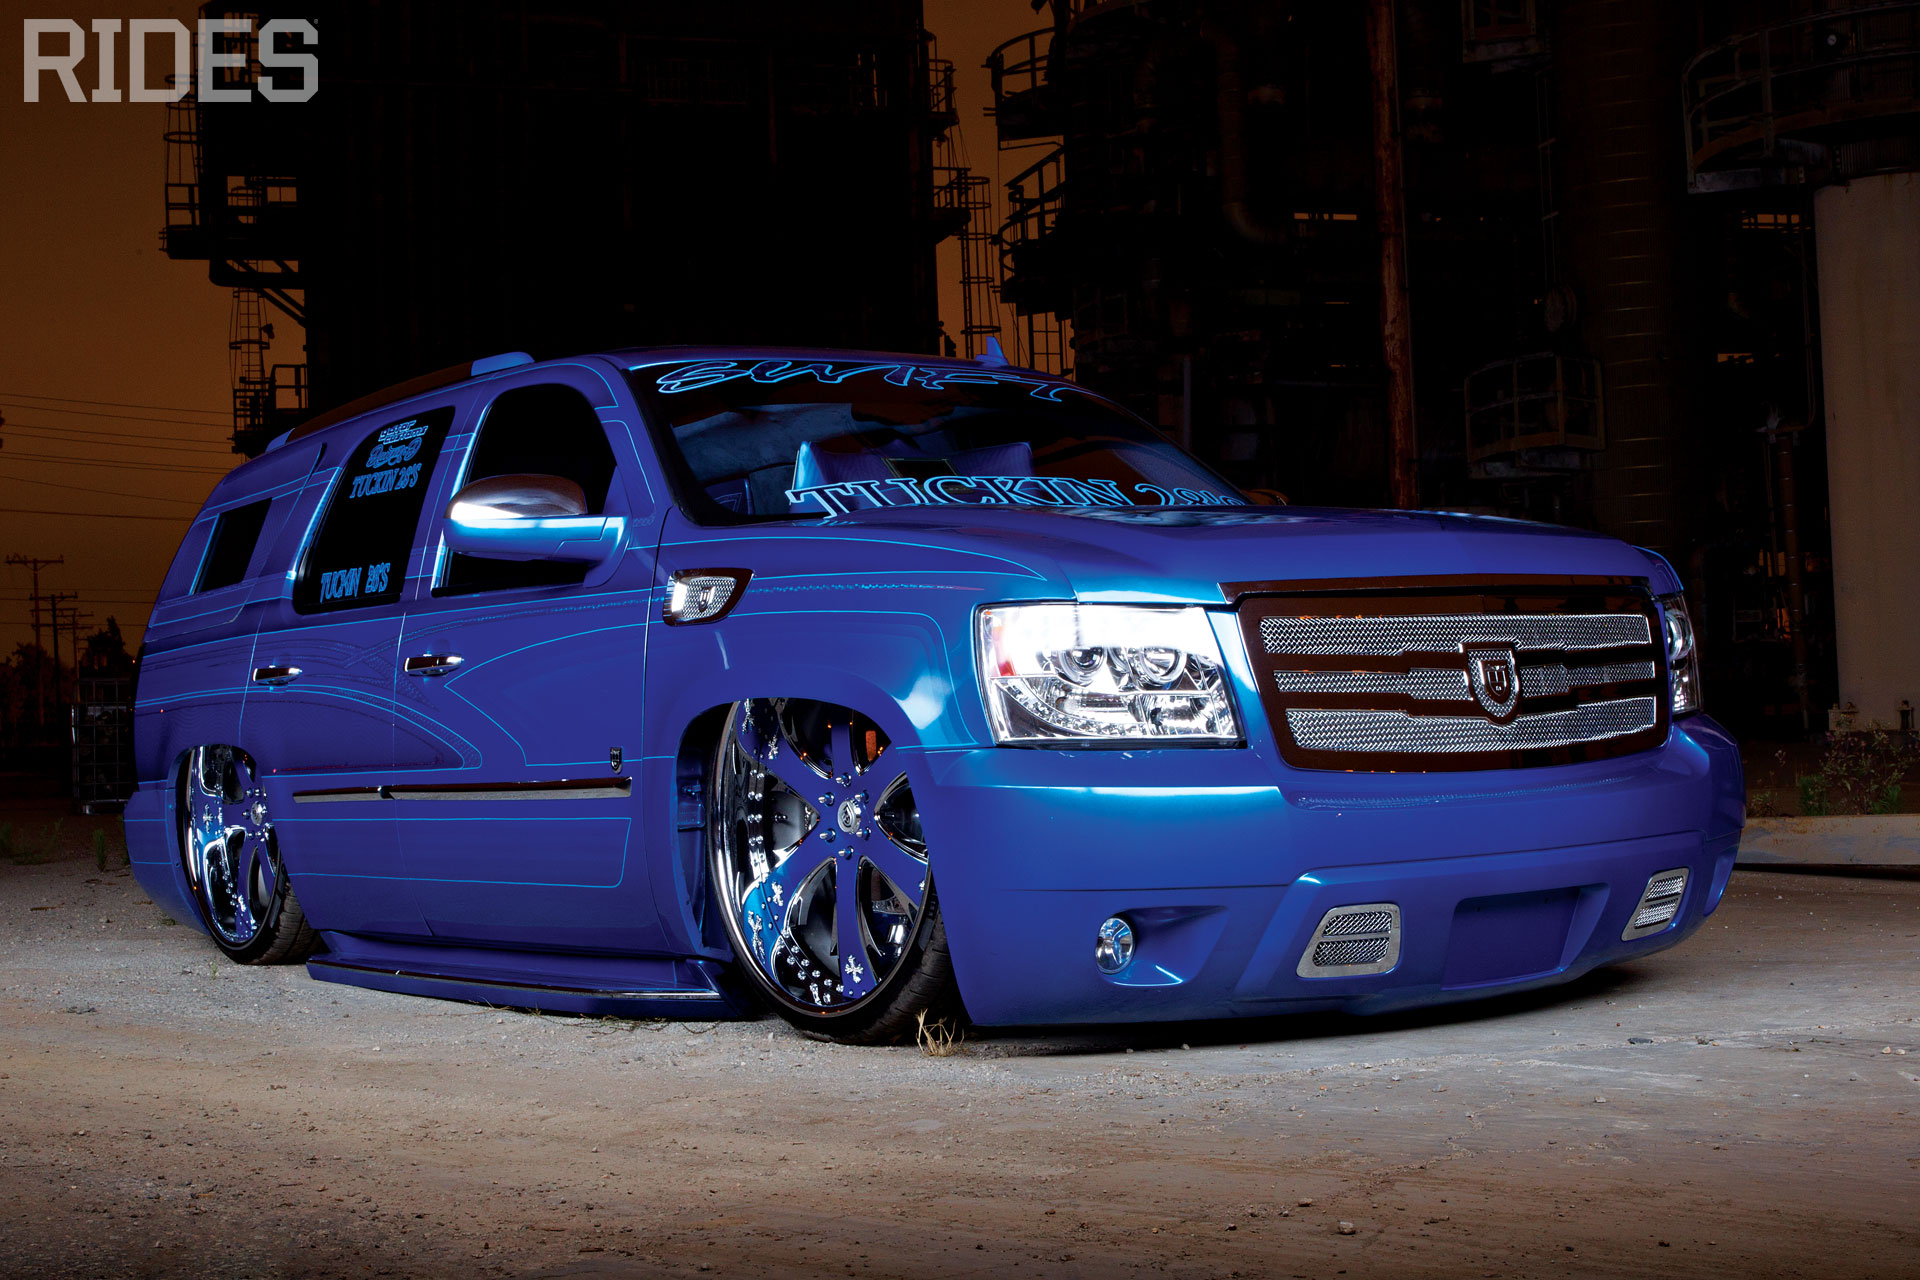 rides cars 2007 2008 chevy chevrolet tahoe tuckin' 28s